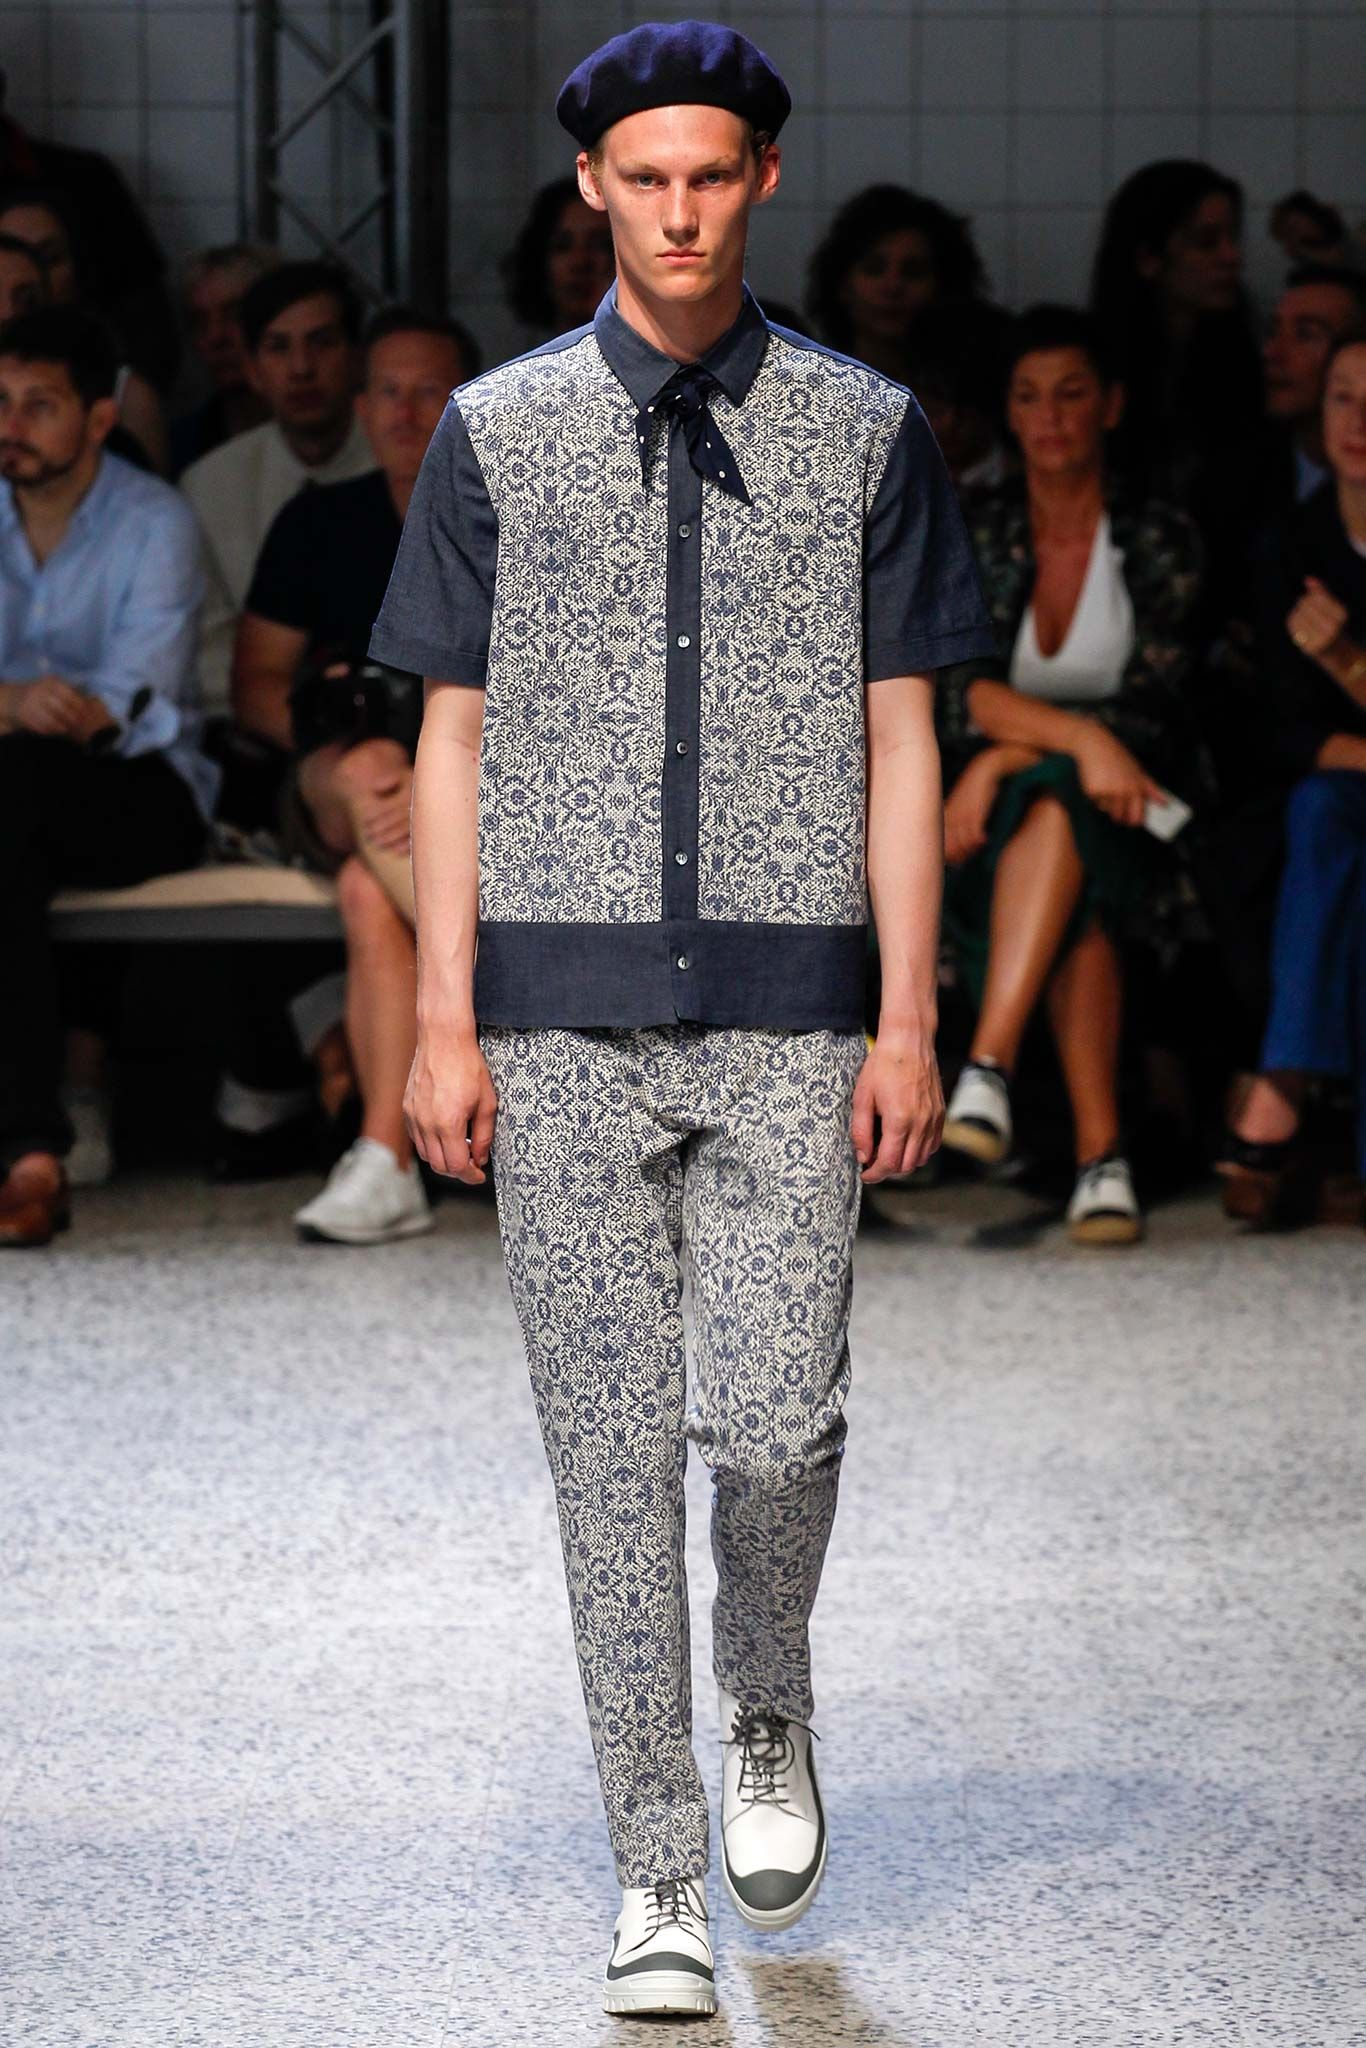 Antonio Marras Spring Summer 2016 Primavera Verano #Menswear #Trends #Tendencias #Moda Hombre - Milan Fashion Week - D.P.